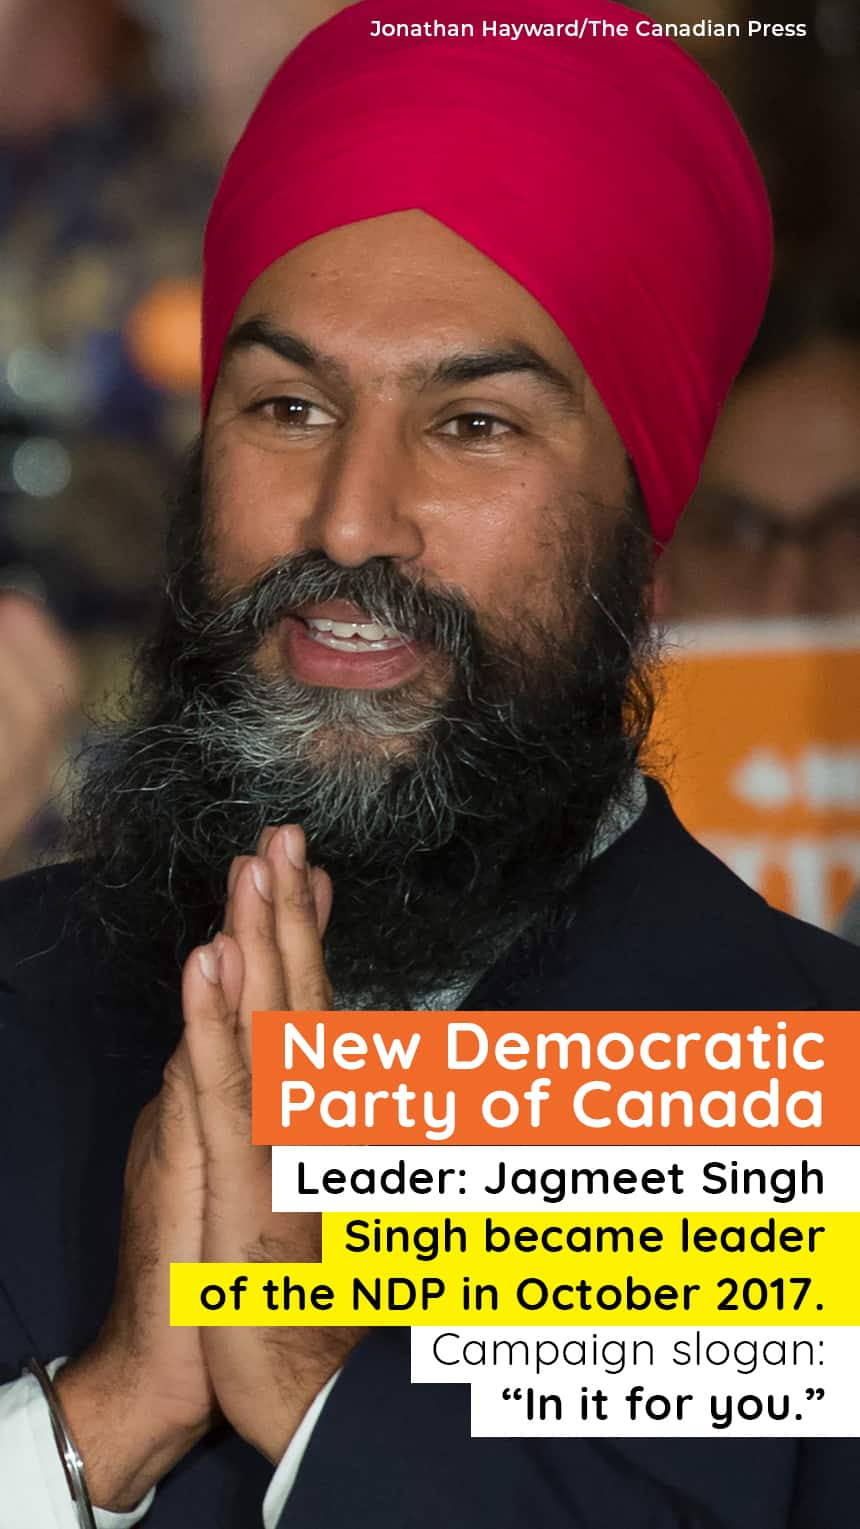 """An image of Jagmeet Singh with text that says, New Democratic Party - Party leader Jagmeet Singh. Singh became leader of the NDP in October 2017. Campaign slogan: """"In it for you."""""""